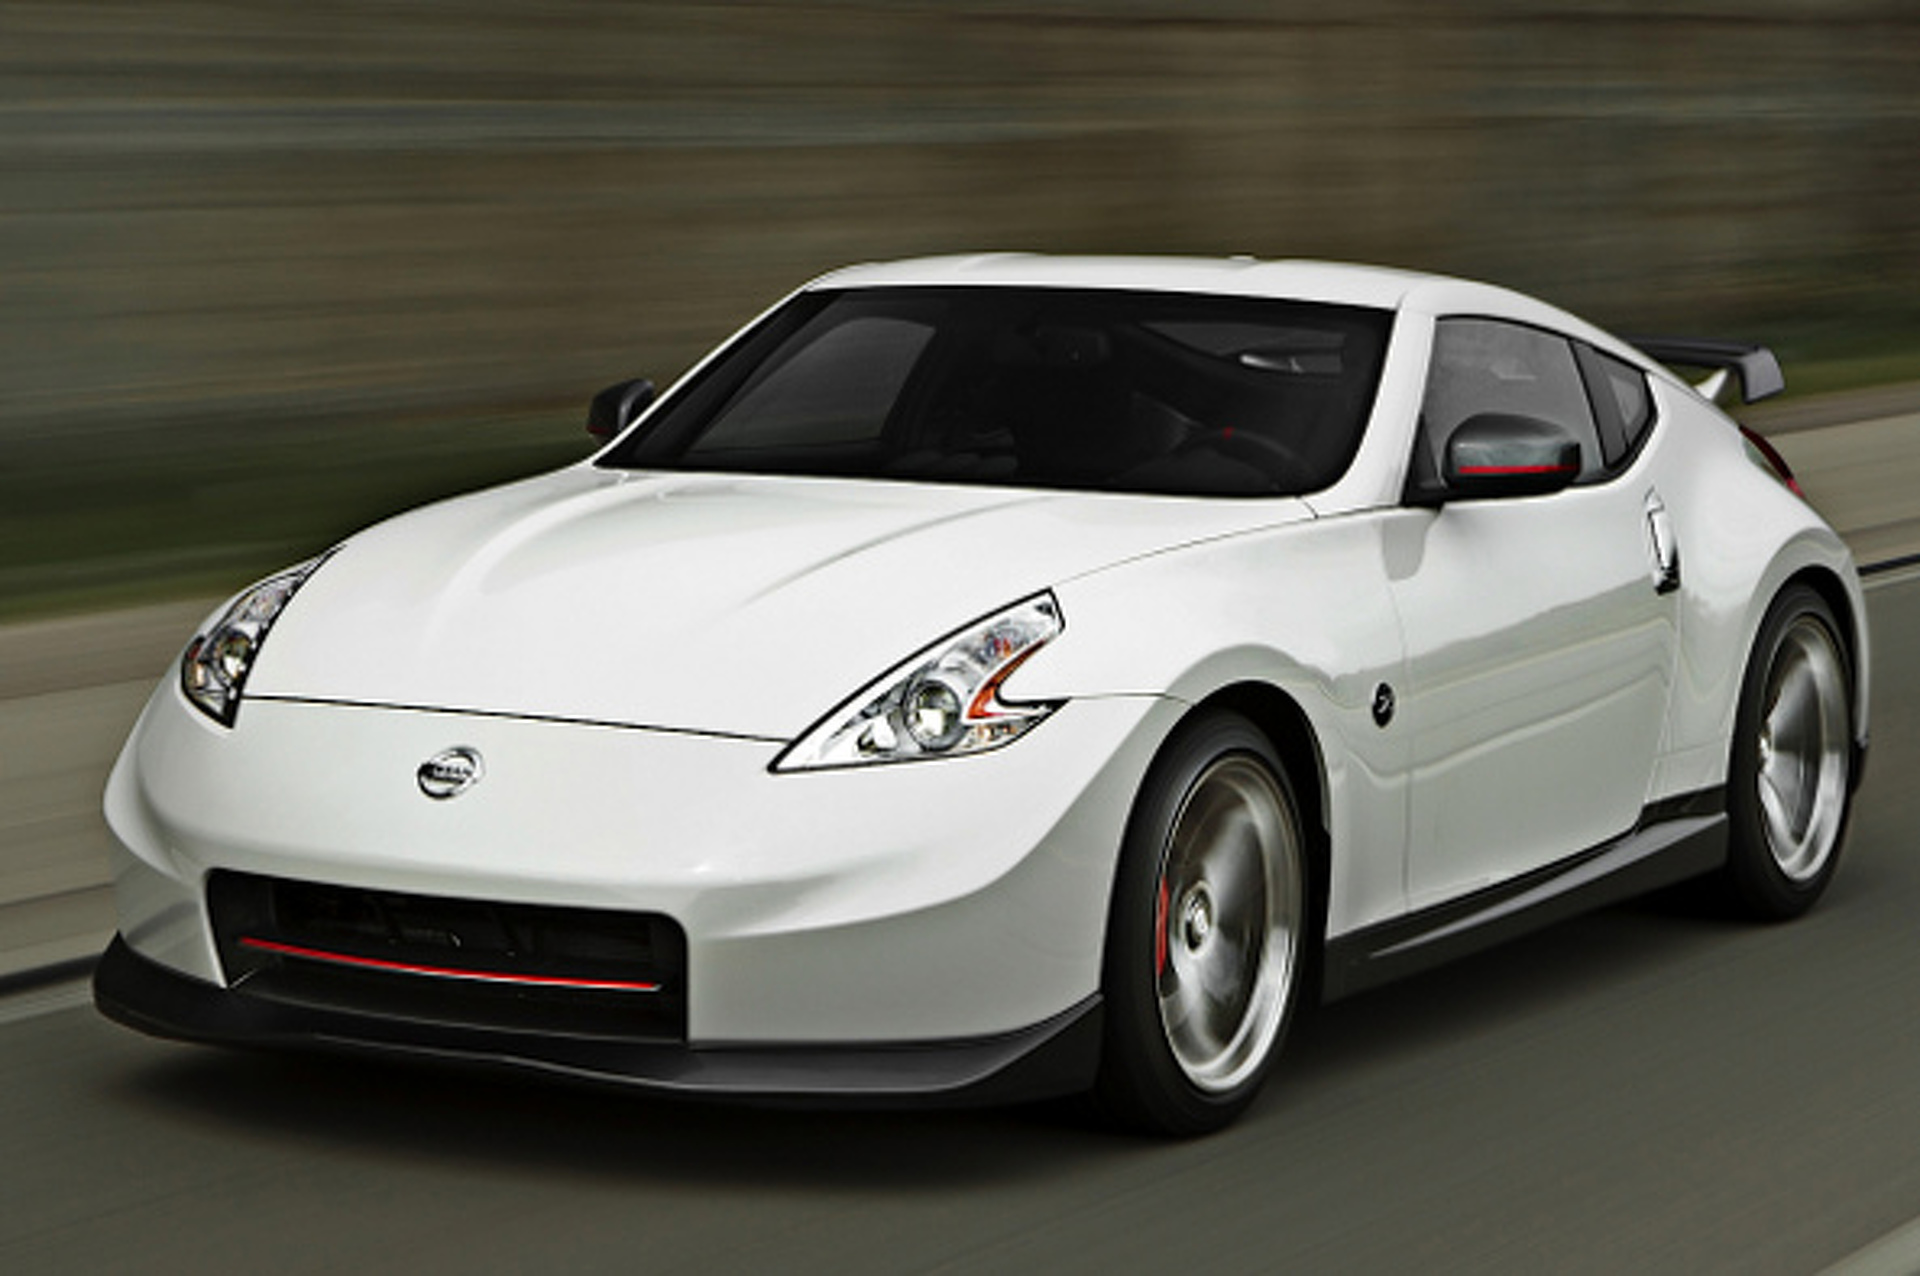 Nissan 370Z Price Lowered for 2013